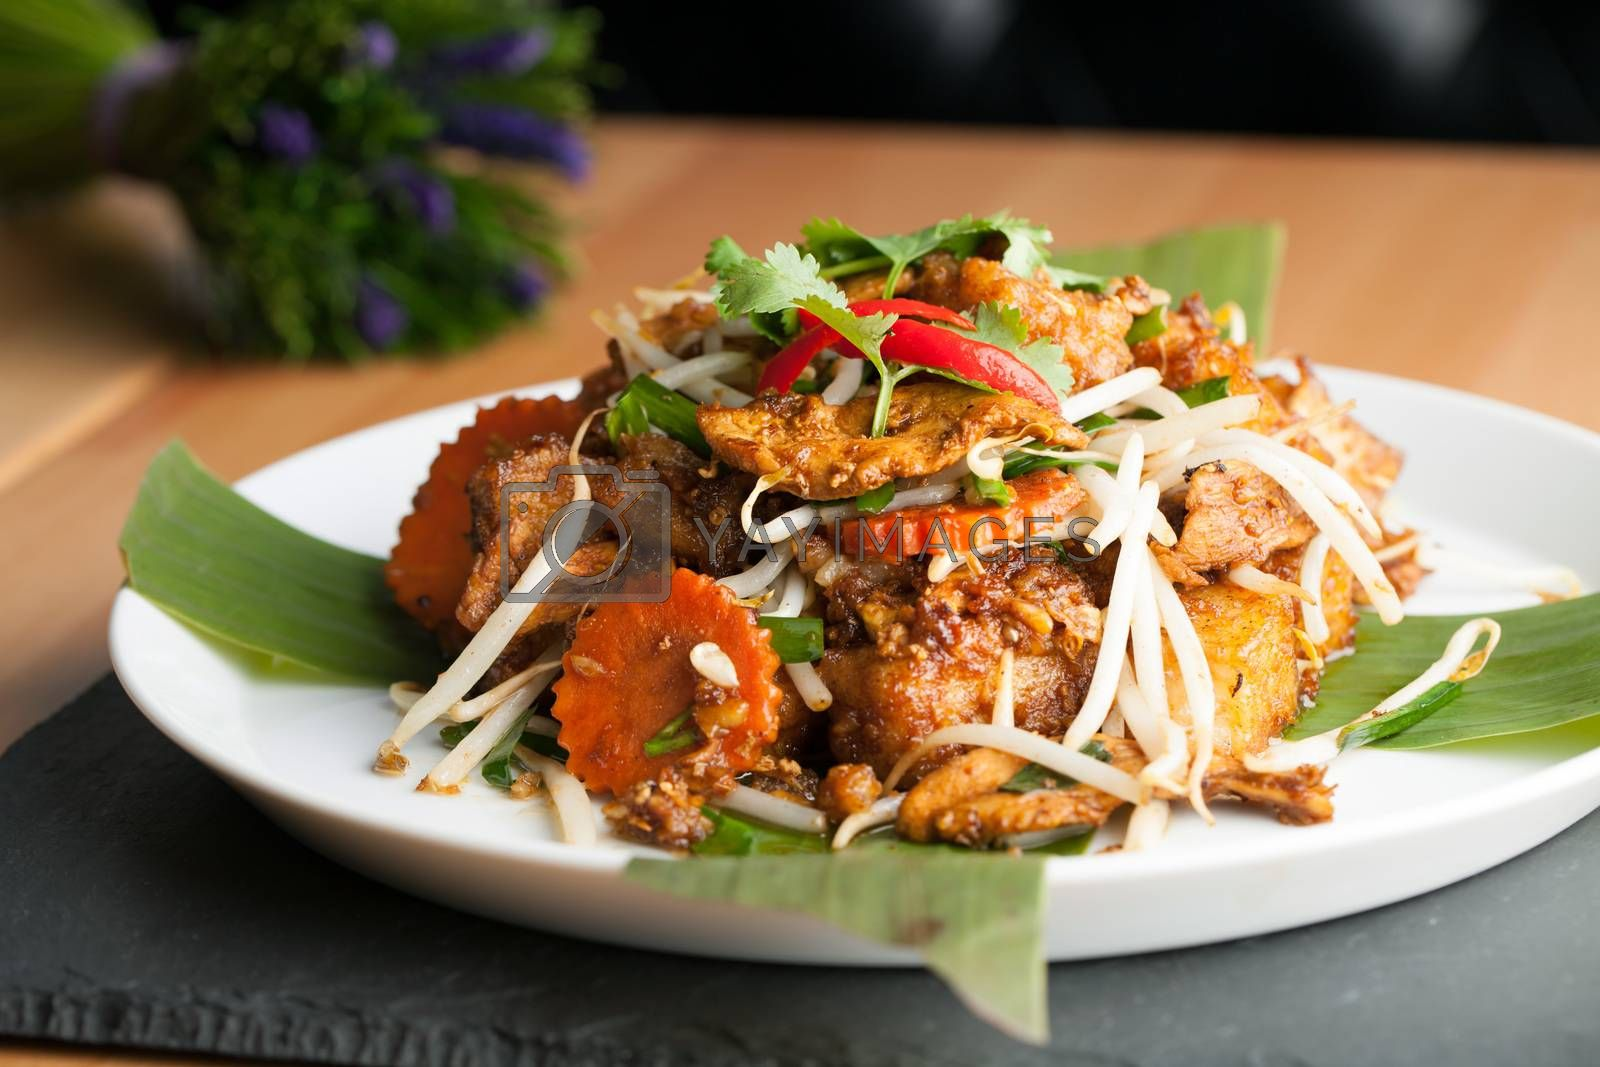 Thai style radish cakes dish with chicken.  Also referred to as turnip cakes. Shallow depth of field.